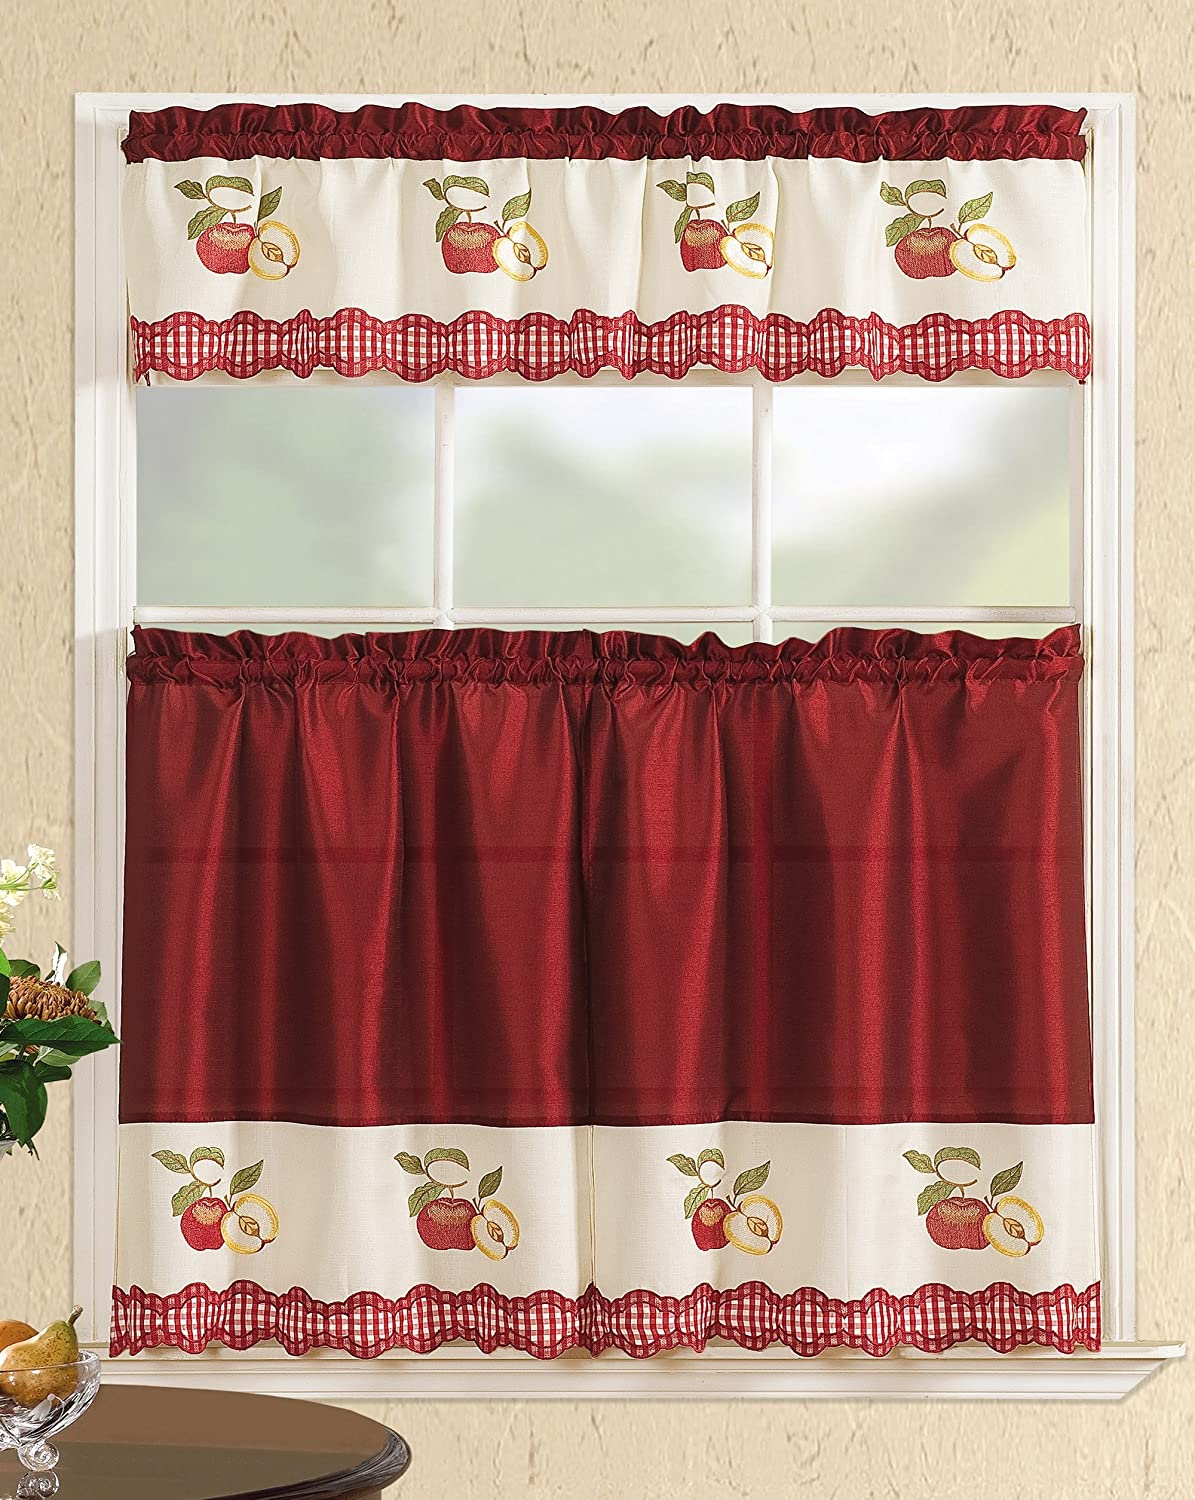 All American Collection Modern Contemporary 3pc Embroidered Home Kitchen Window Treatment Curtain Set (Straight Valance, Red Apples)